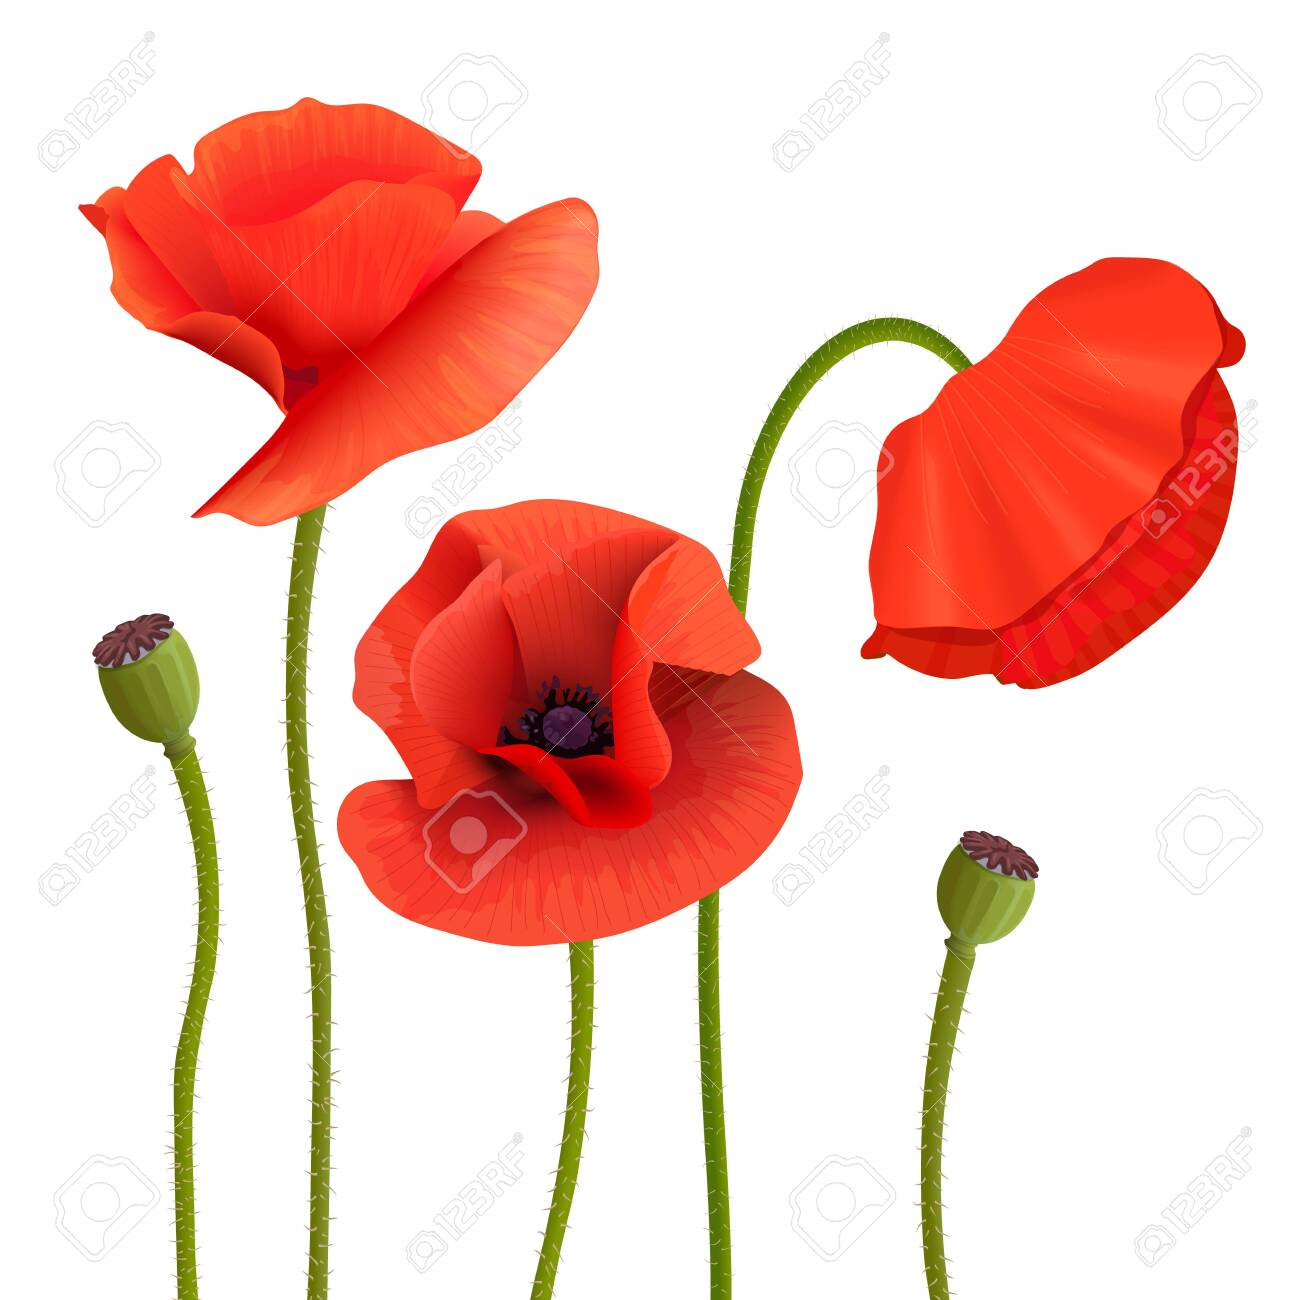 Bright Red Poppies Flowers Pods Stems Wallpaper Picture